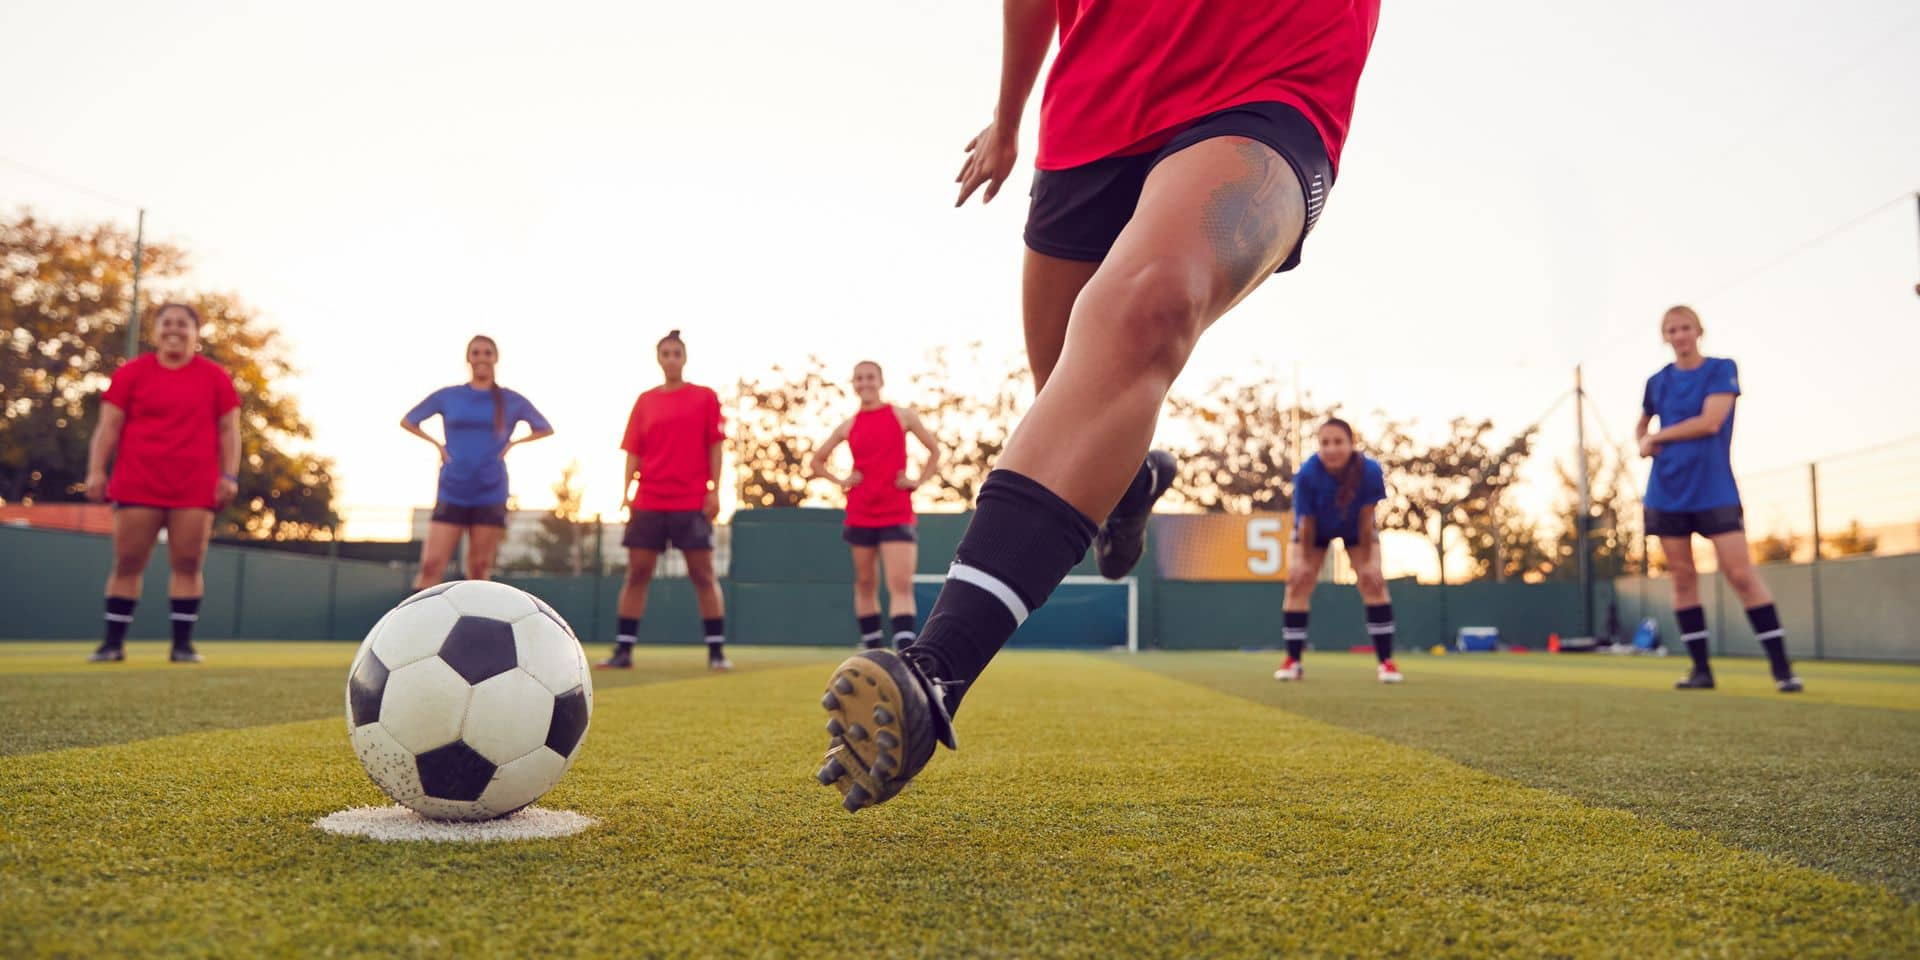 Close,Up,Of,Player,Taking,Penalty,During,Womens,Soccer,Match